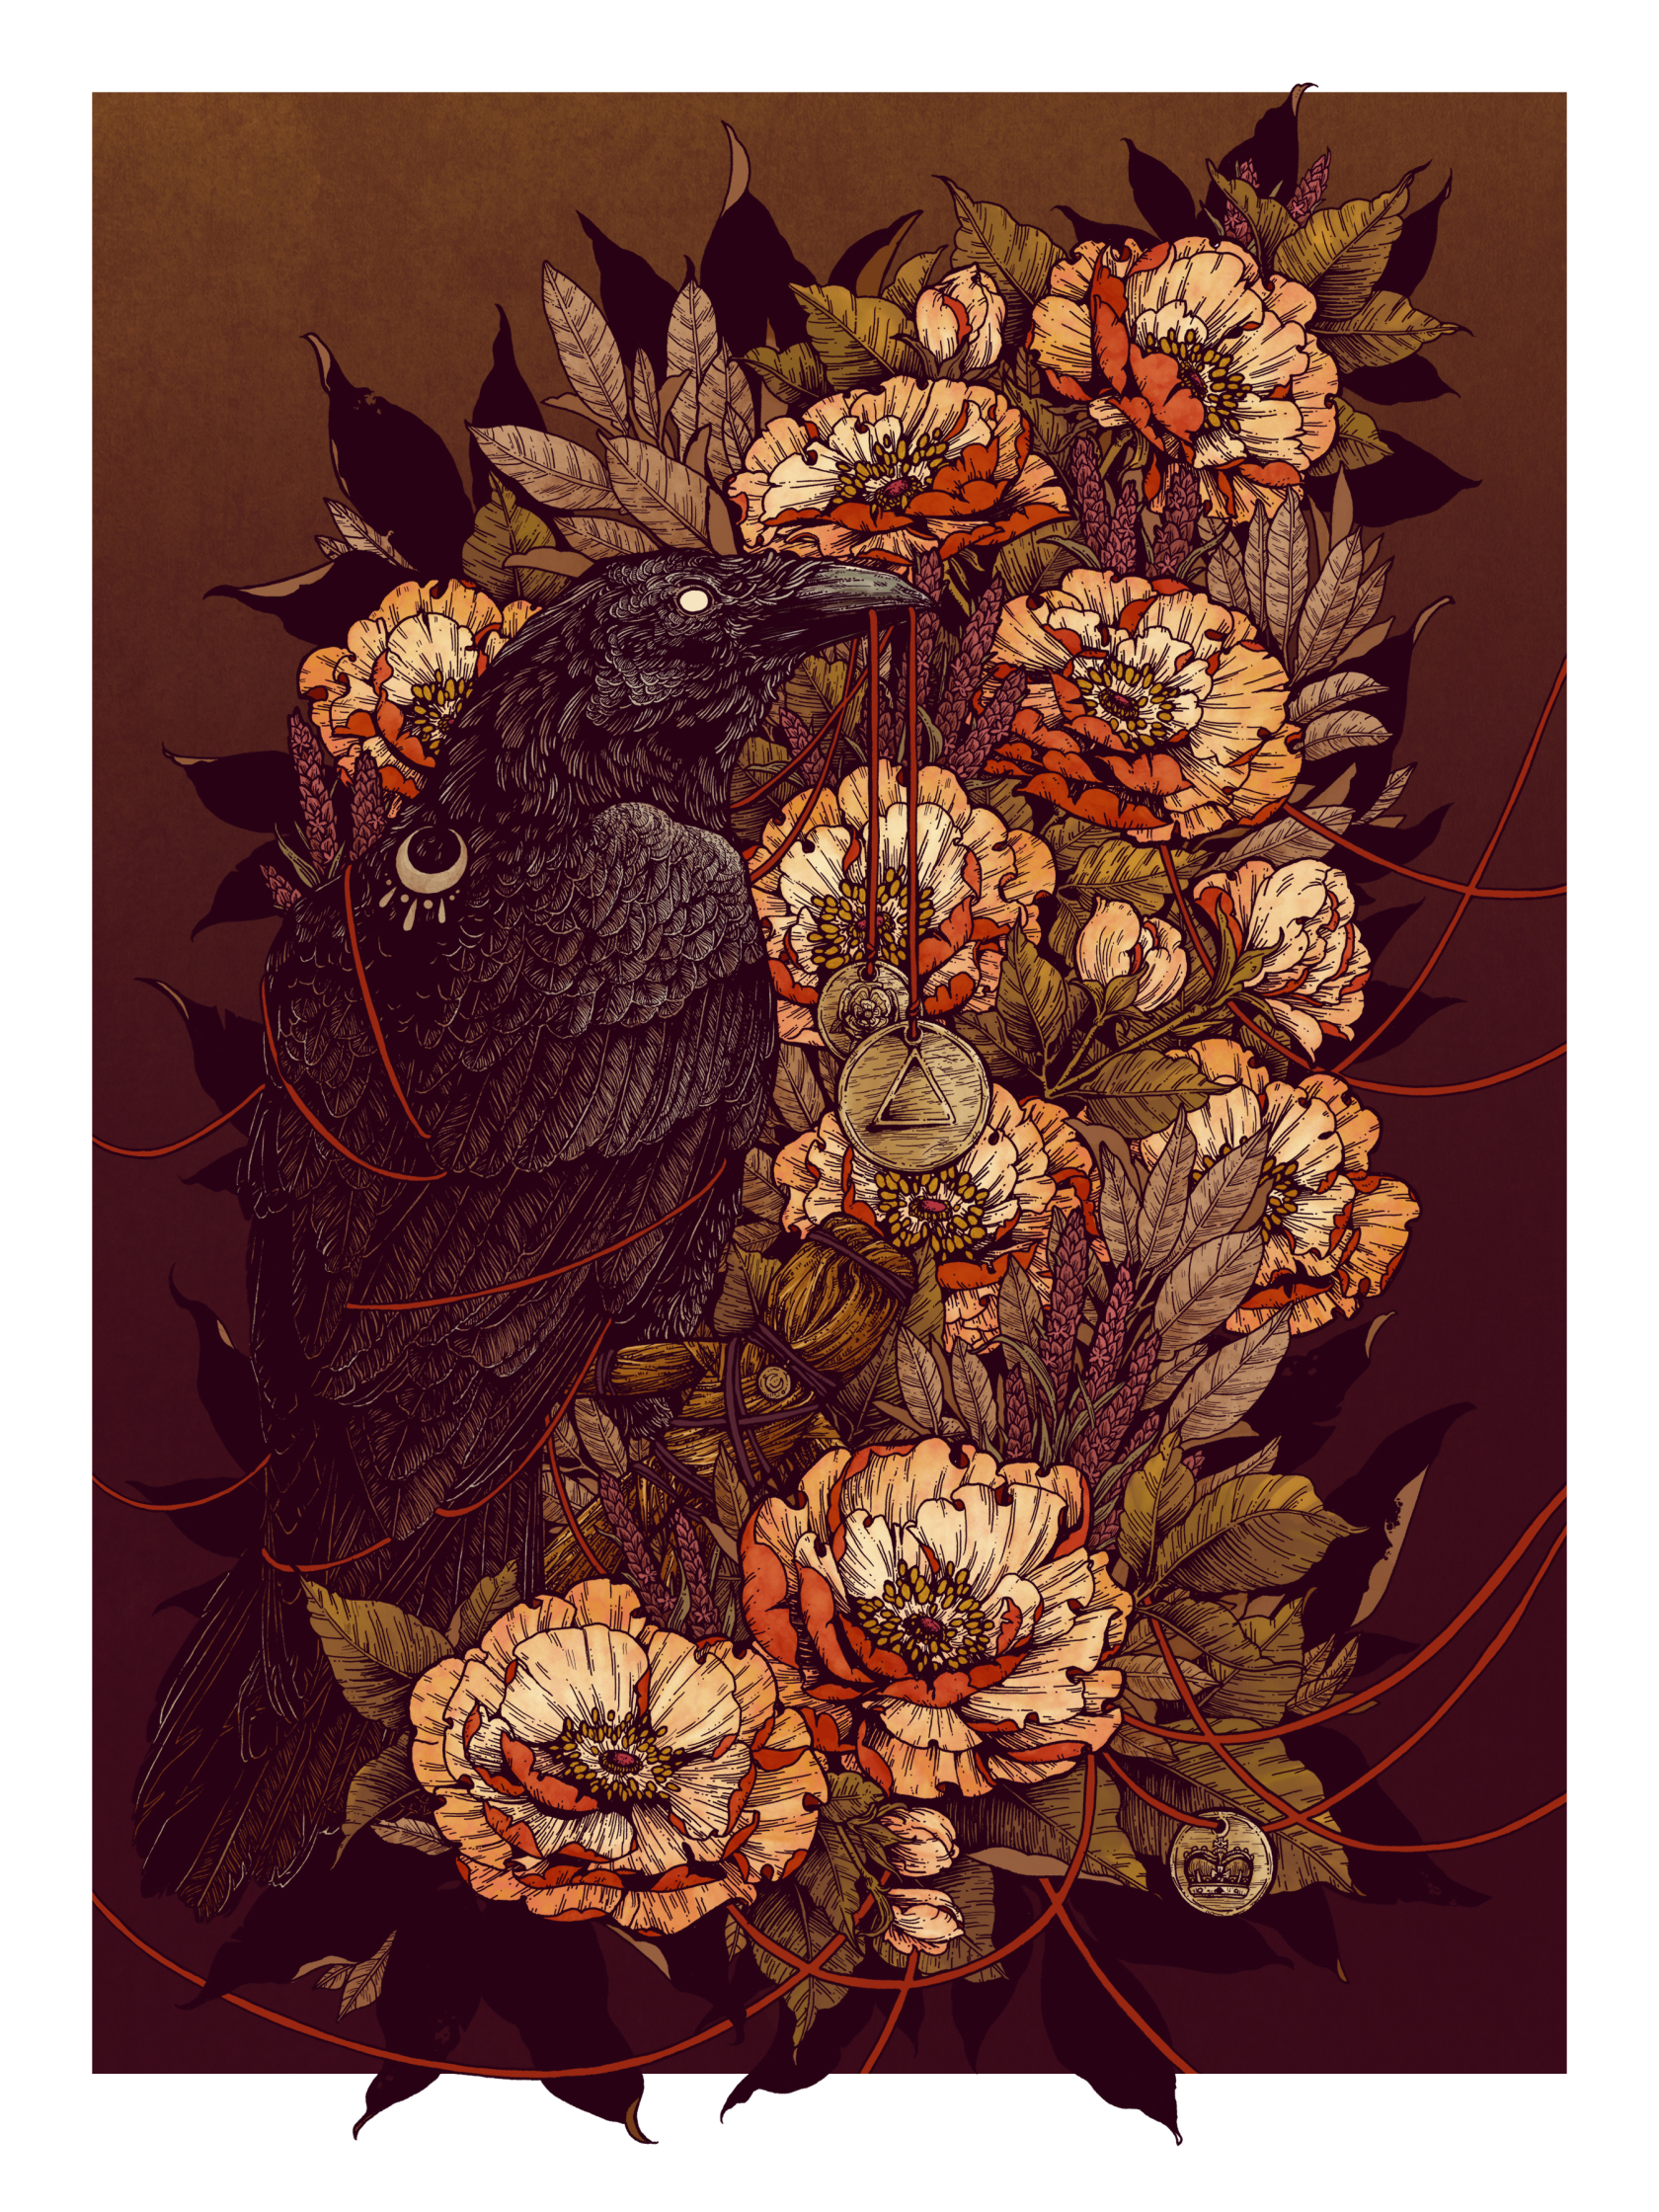 Chicken House_ Witchborn By Nicolas Bowling_ Art Print Version_ Erica Williams.jpg